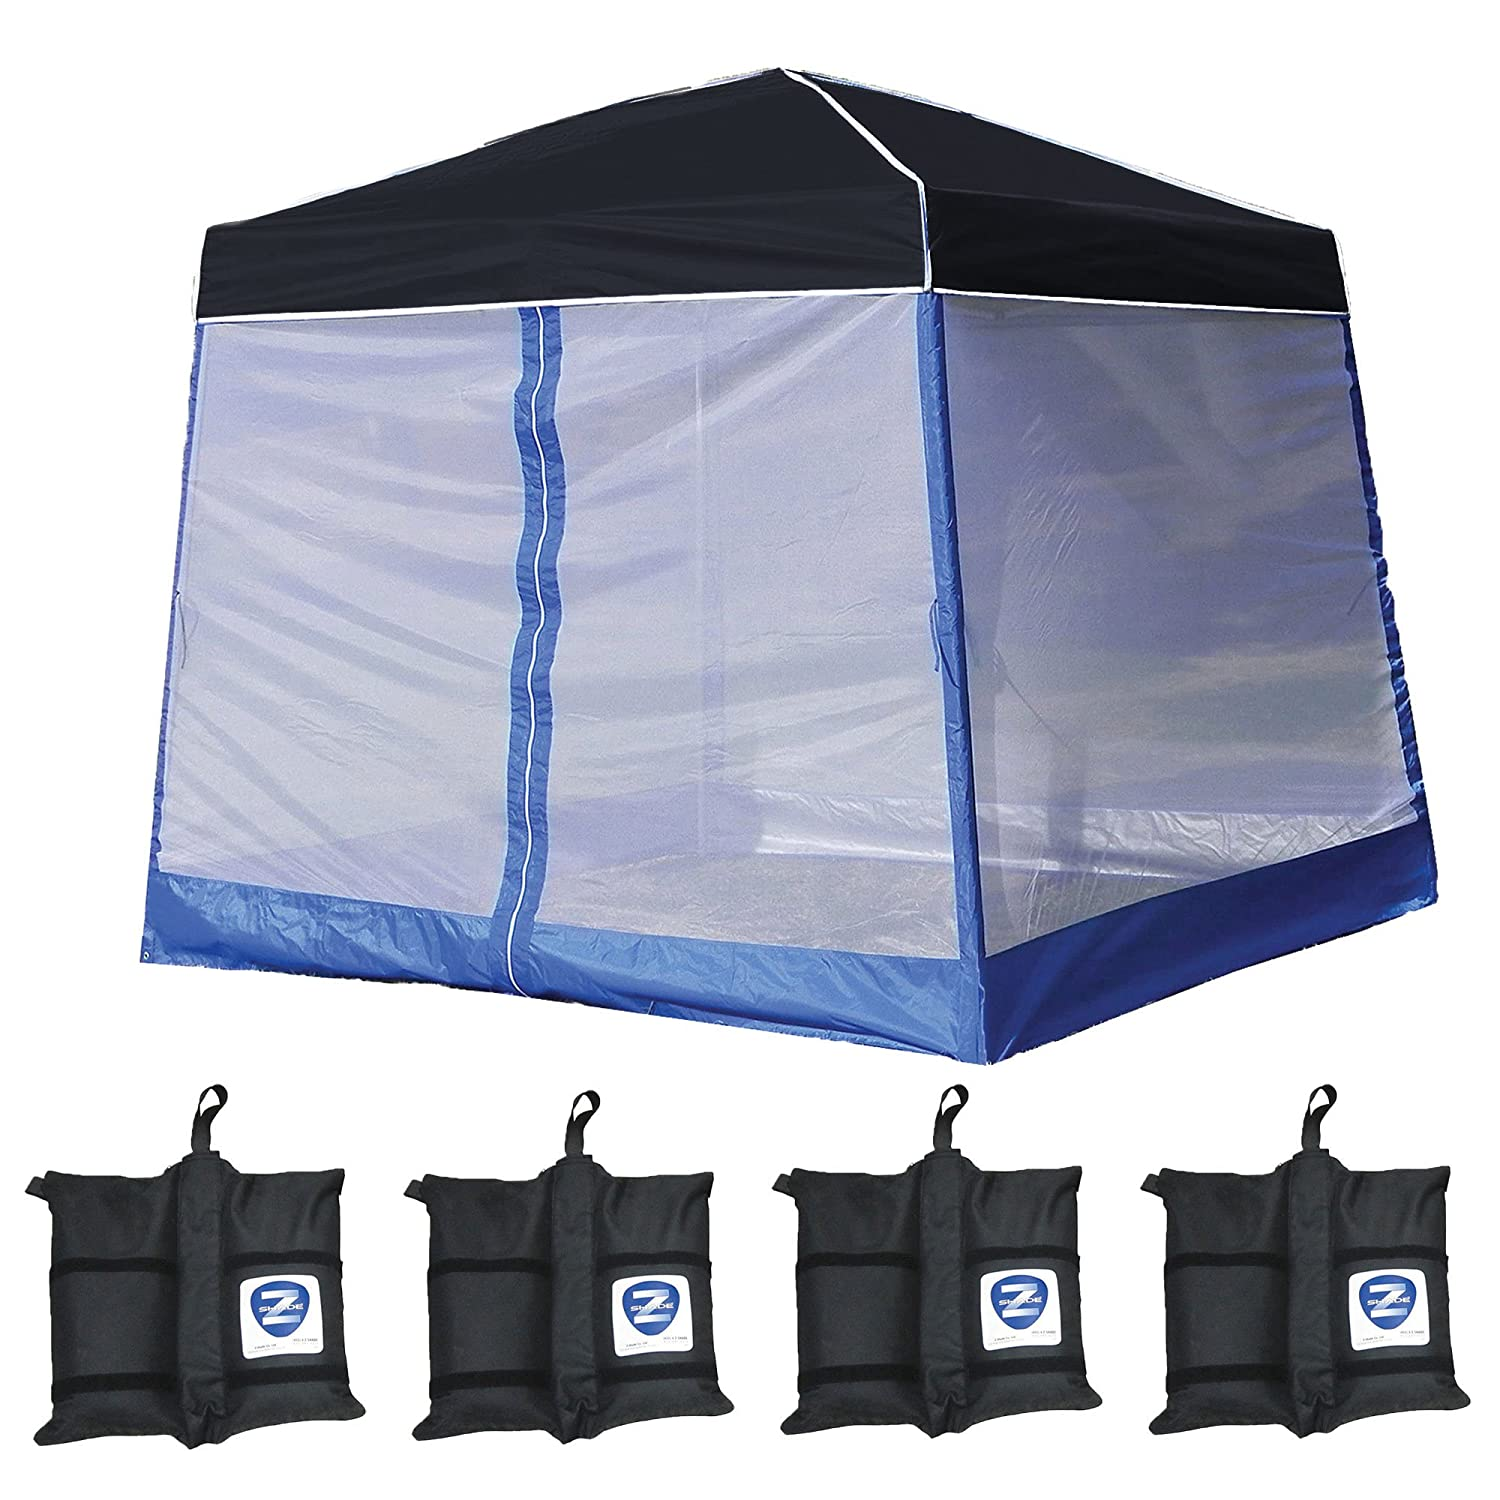 ZShade 10' x 10' Angled Leg Instant Black Canopy Shelter with Screen & Weights